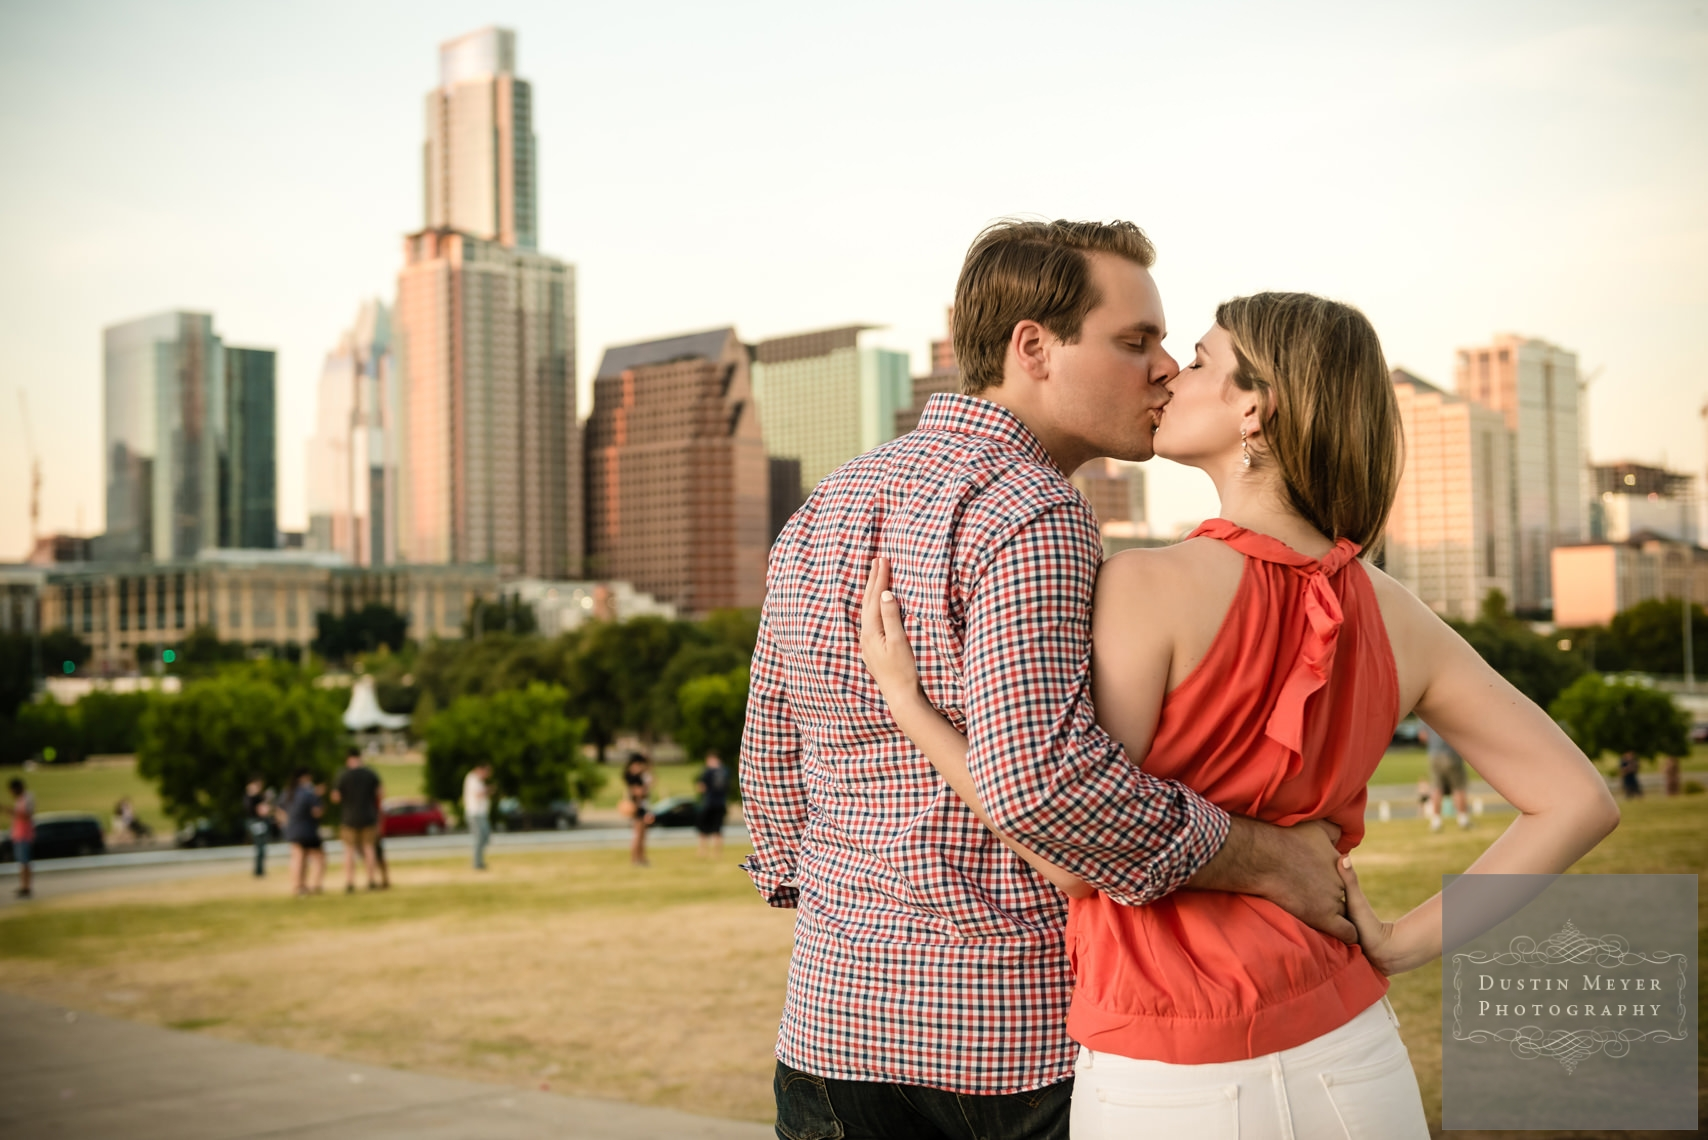 Engagement portraits ideas poses austin tx dustin meyer photography